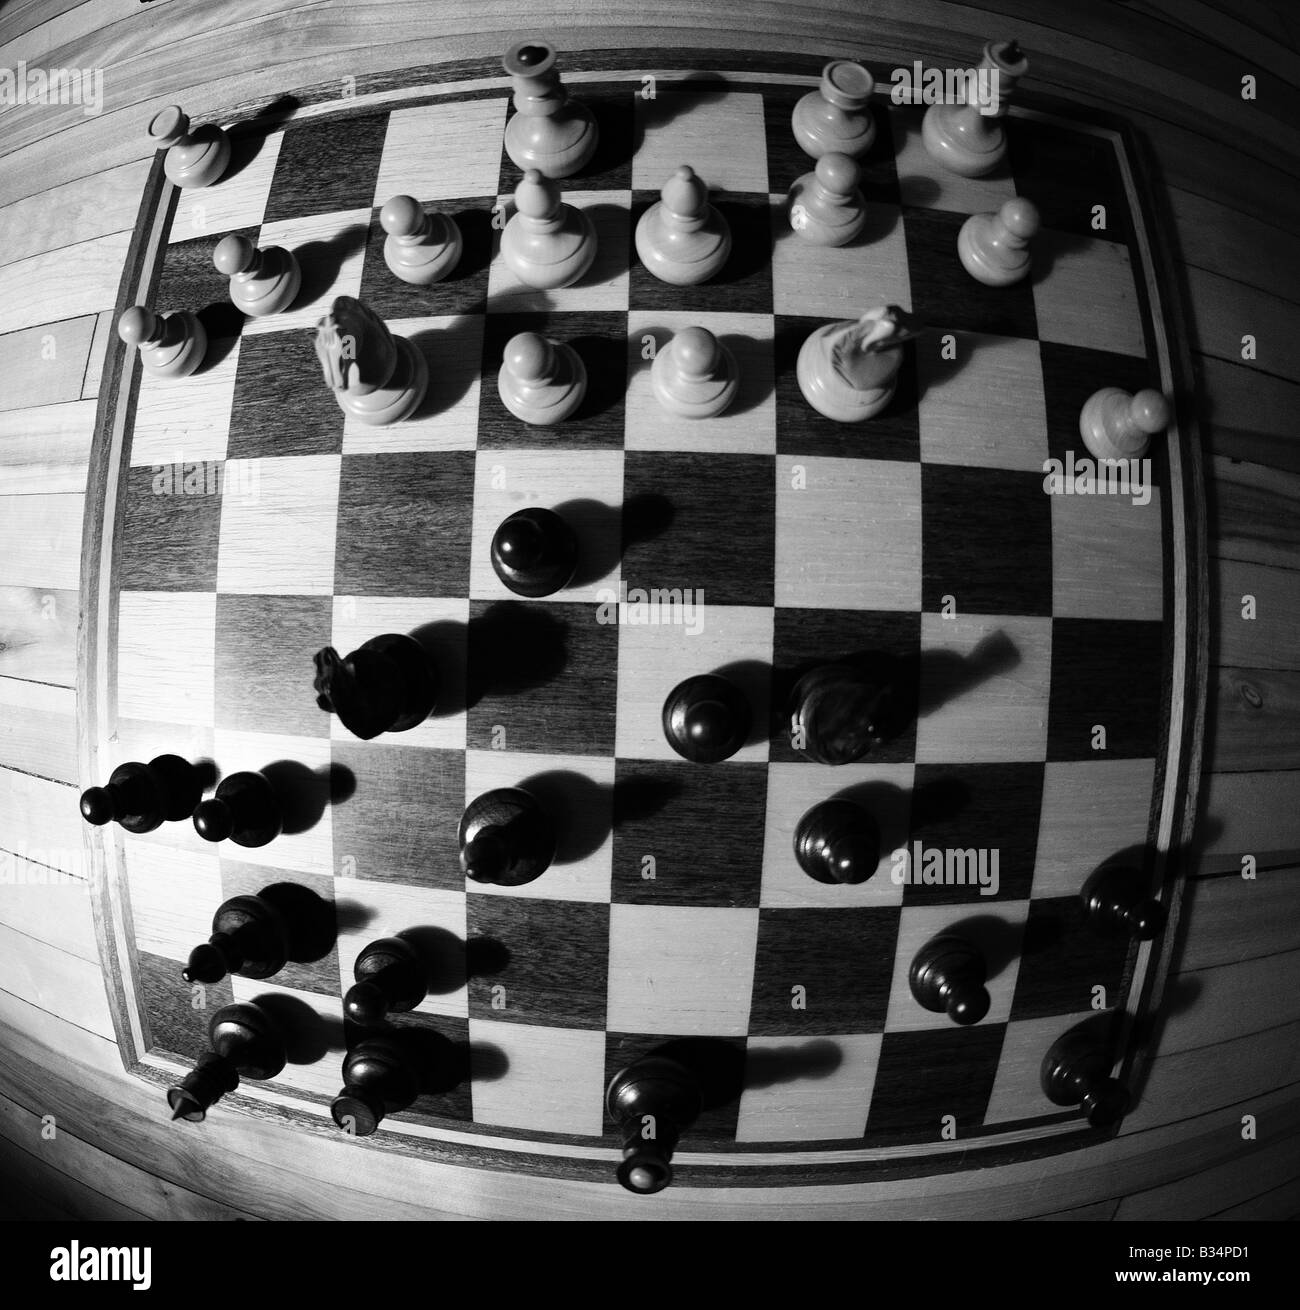 wide angle detailed images of various chess pieces, queen, king, paws, black and white on a chessboard, resign defeat, Stock Photo